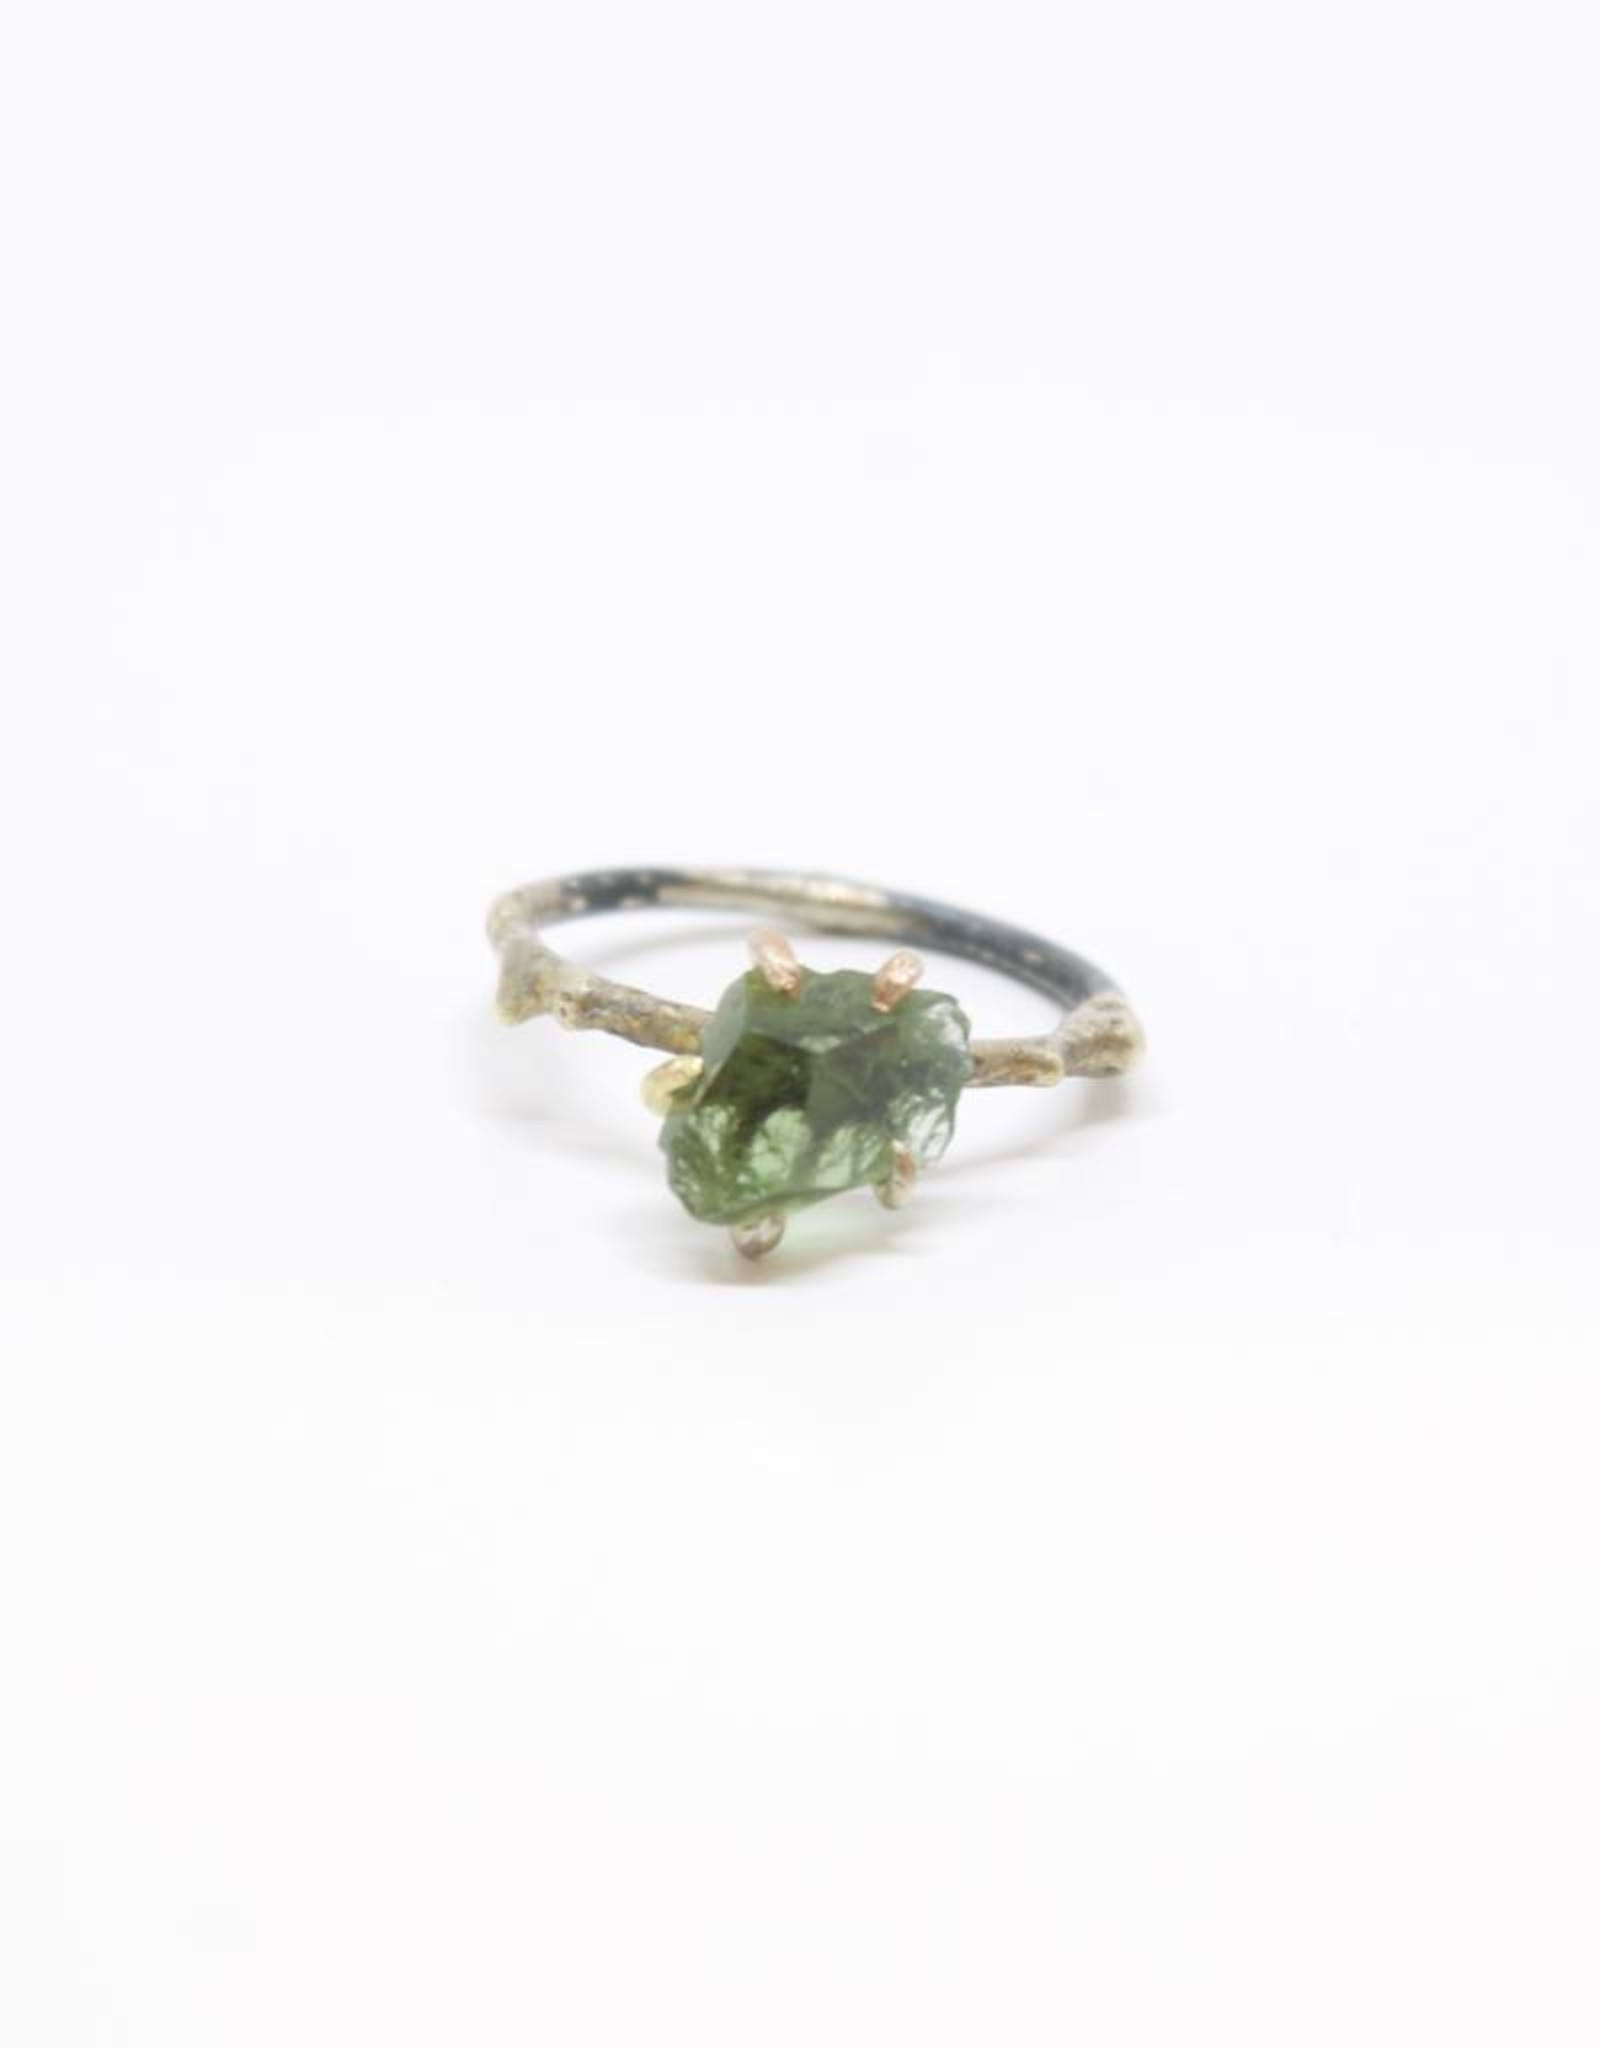 Variance Objects Moldavite Small Ring